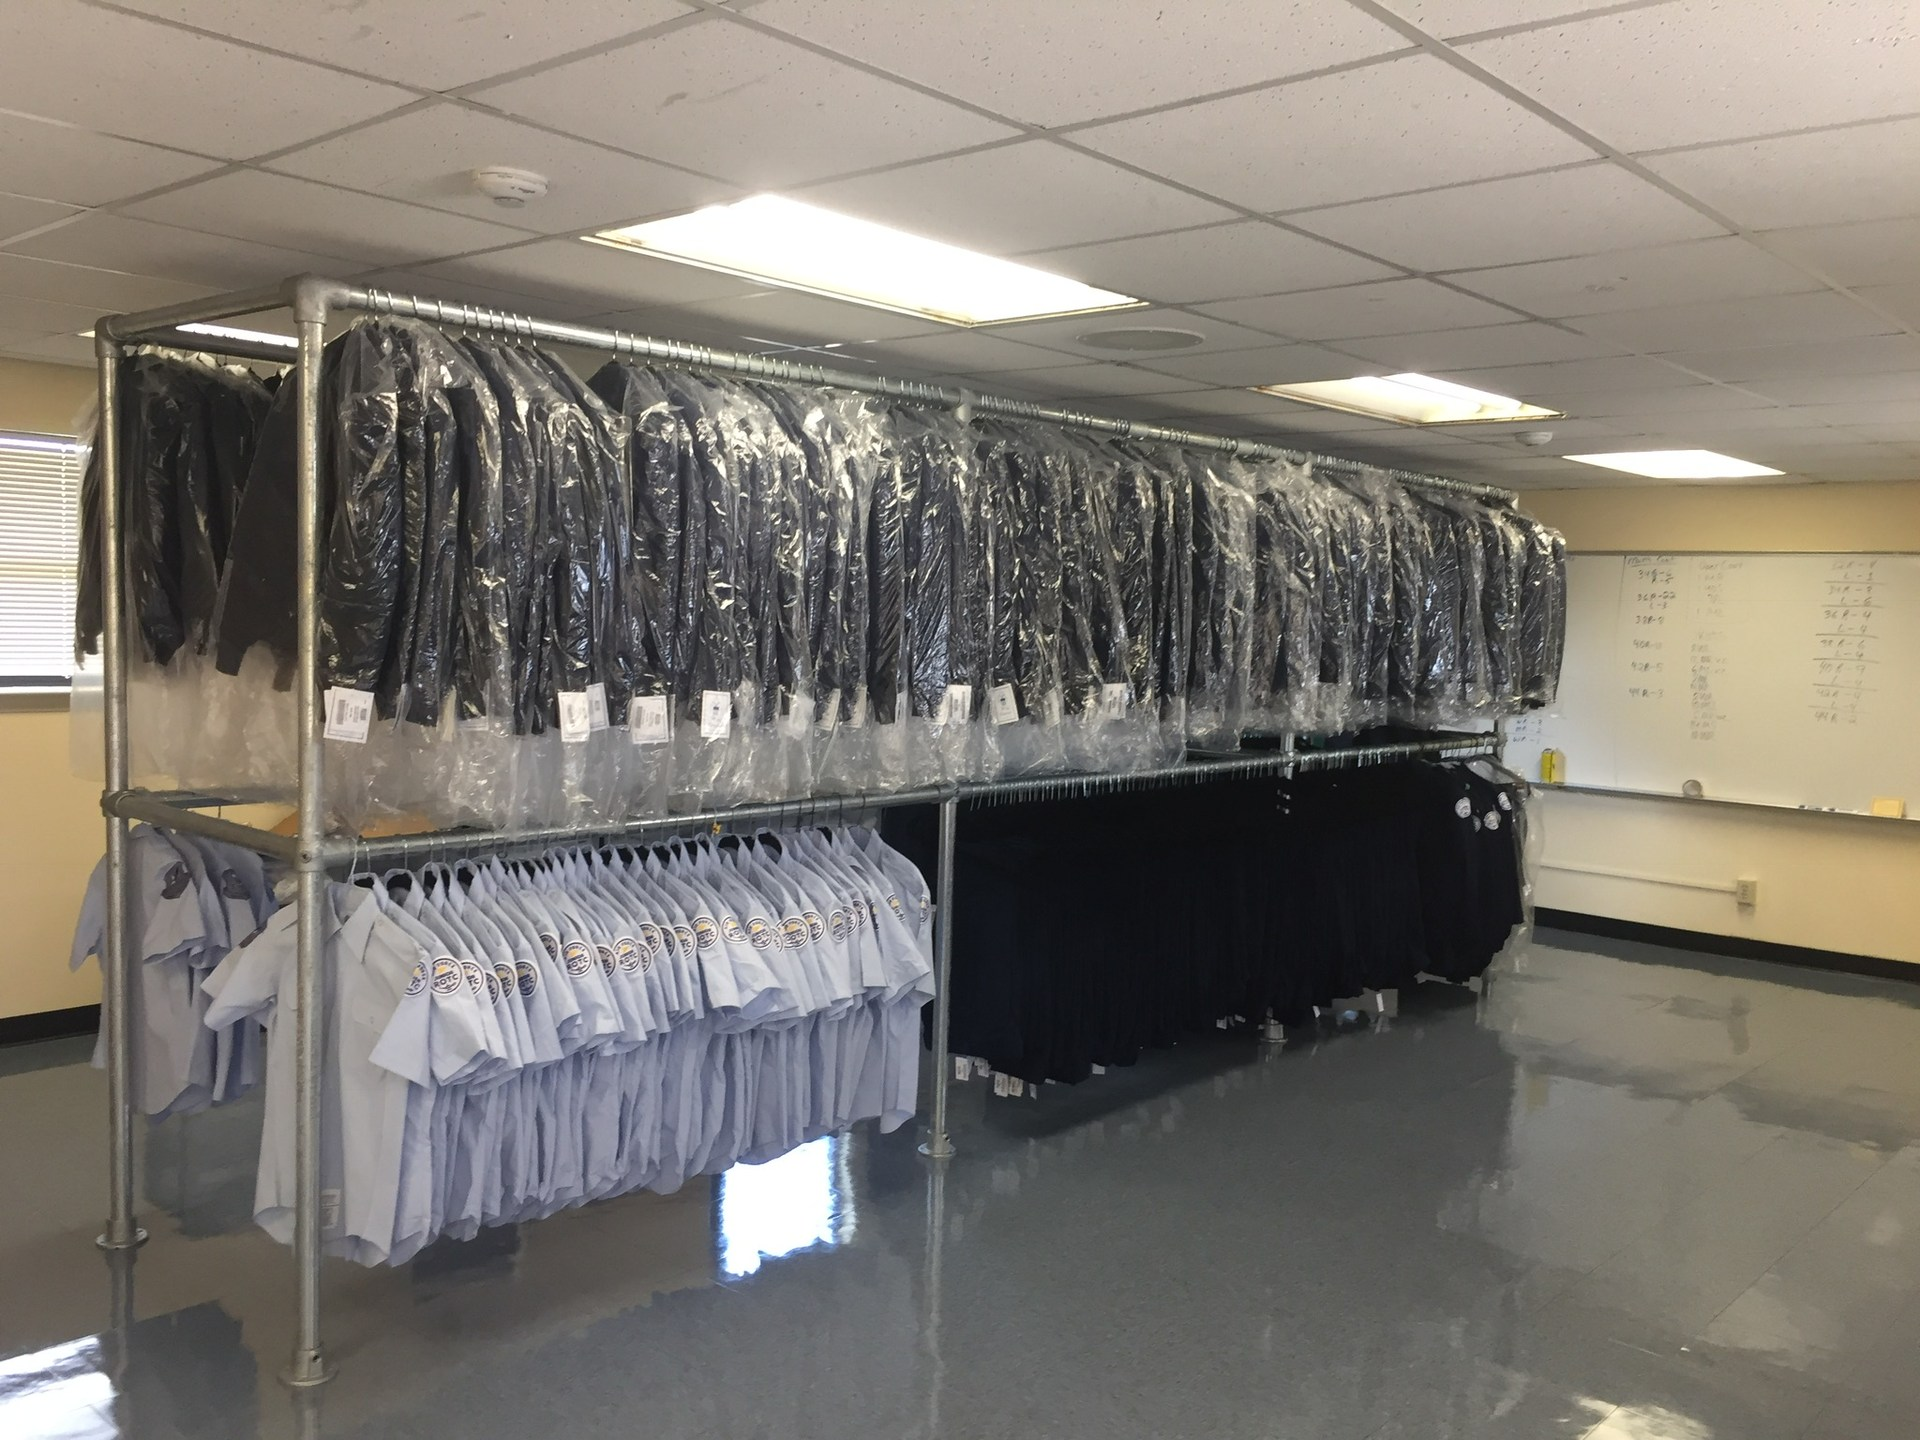 Uniforms are waiting!